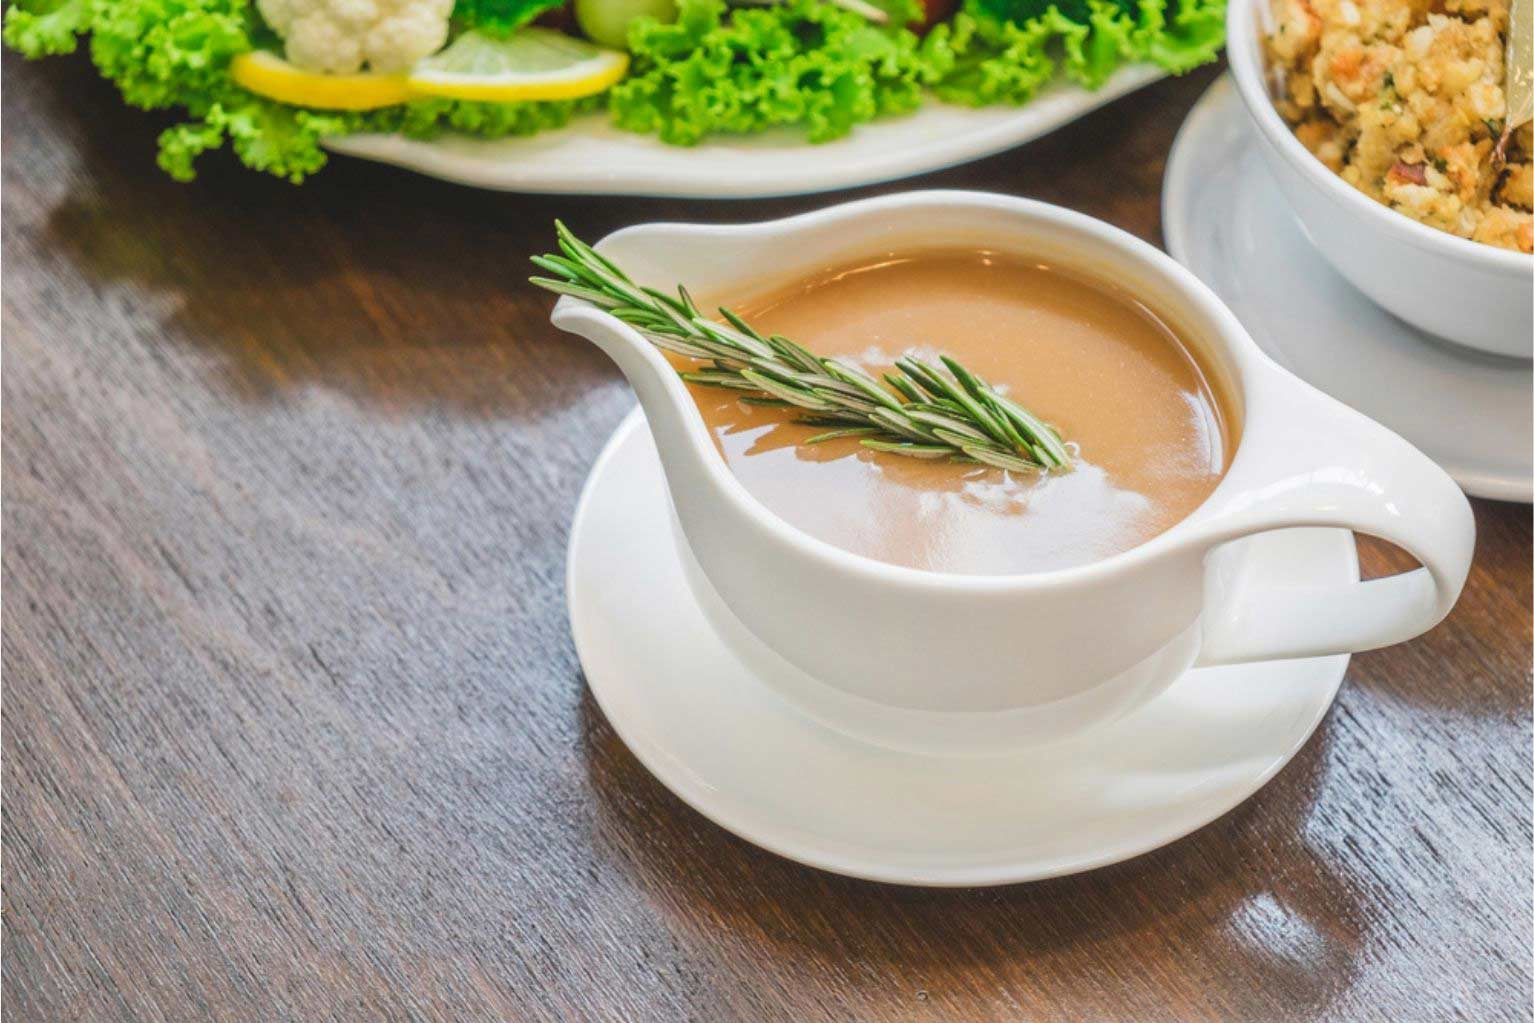 White ceramic gravy boat filled with gravy and a stem of rosemary on a wooden table.